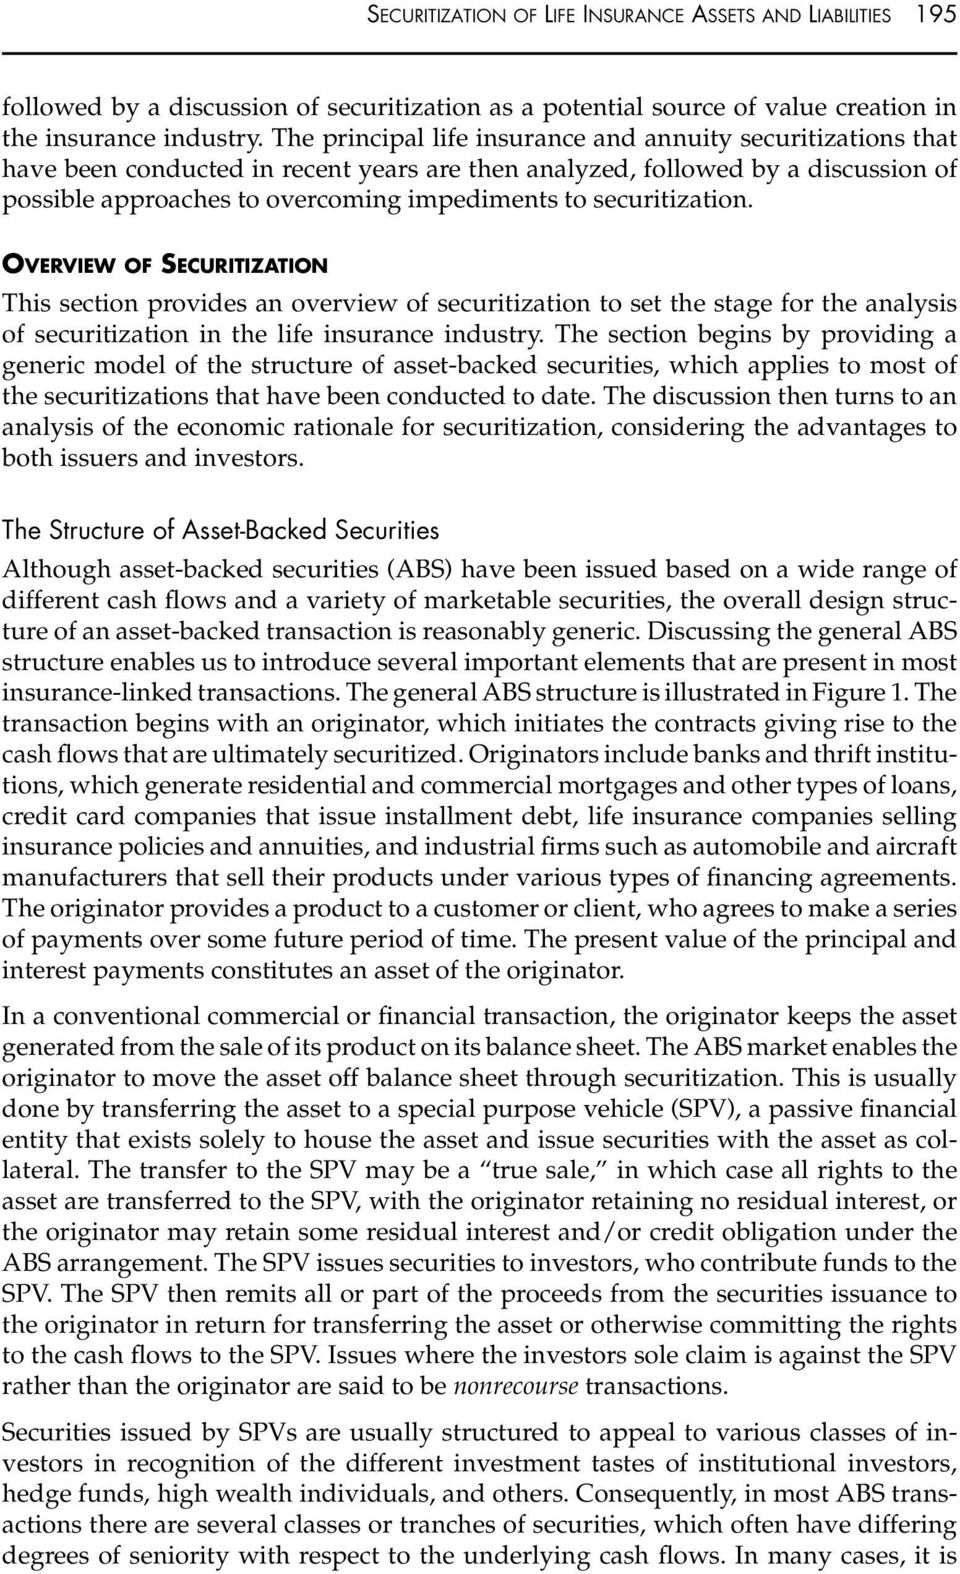 SECURITIZATION OF LIFE INSURANCE ASSETS AND LIABILITIES - PDF